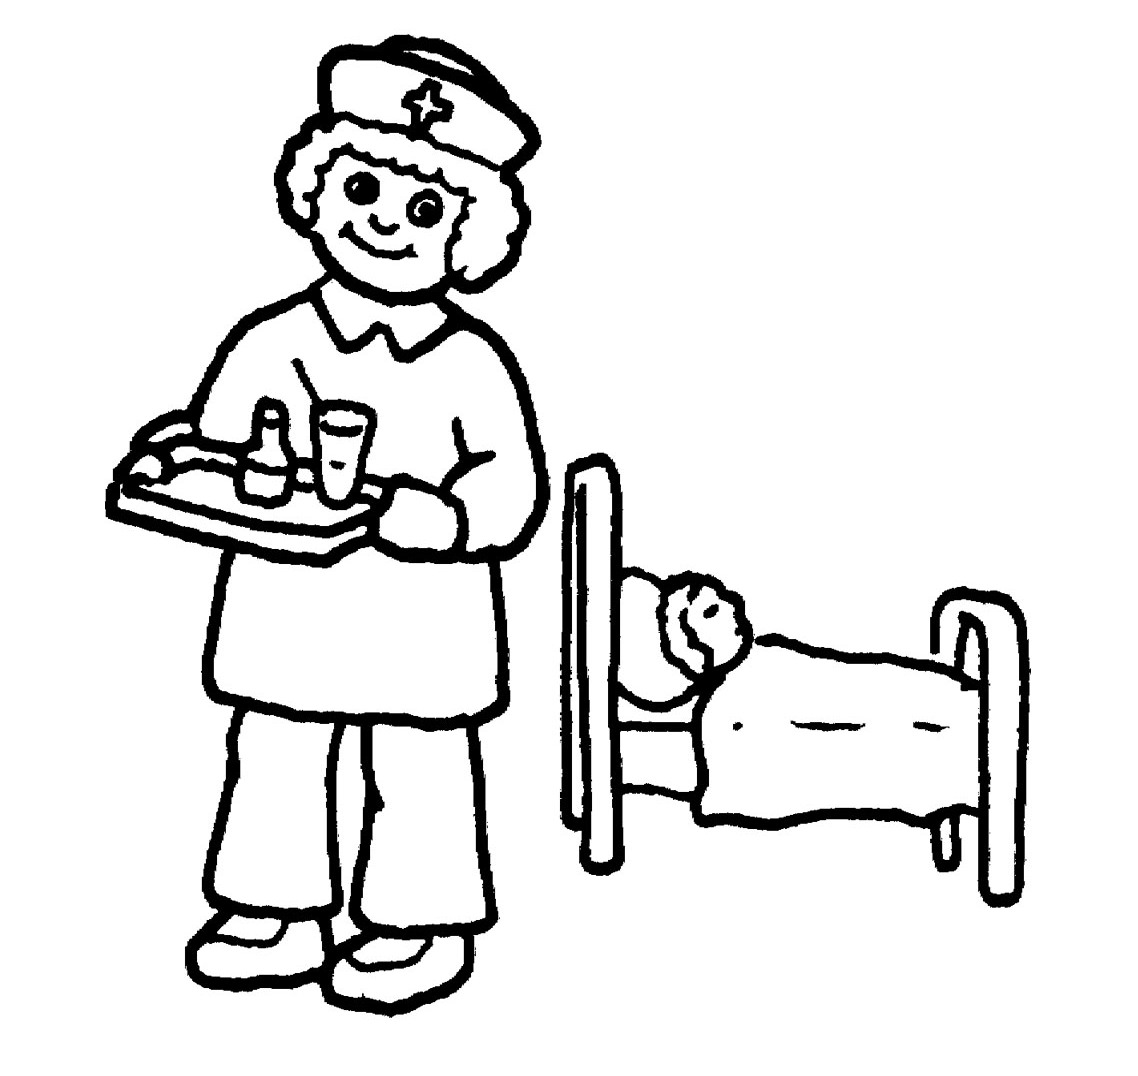 Doctor day coloring pages nurses bring drinks coloring for kids